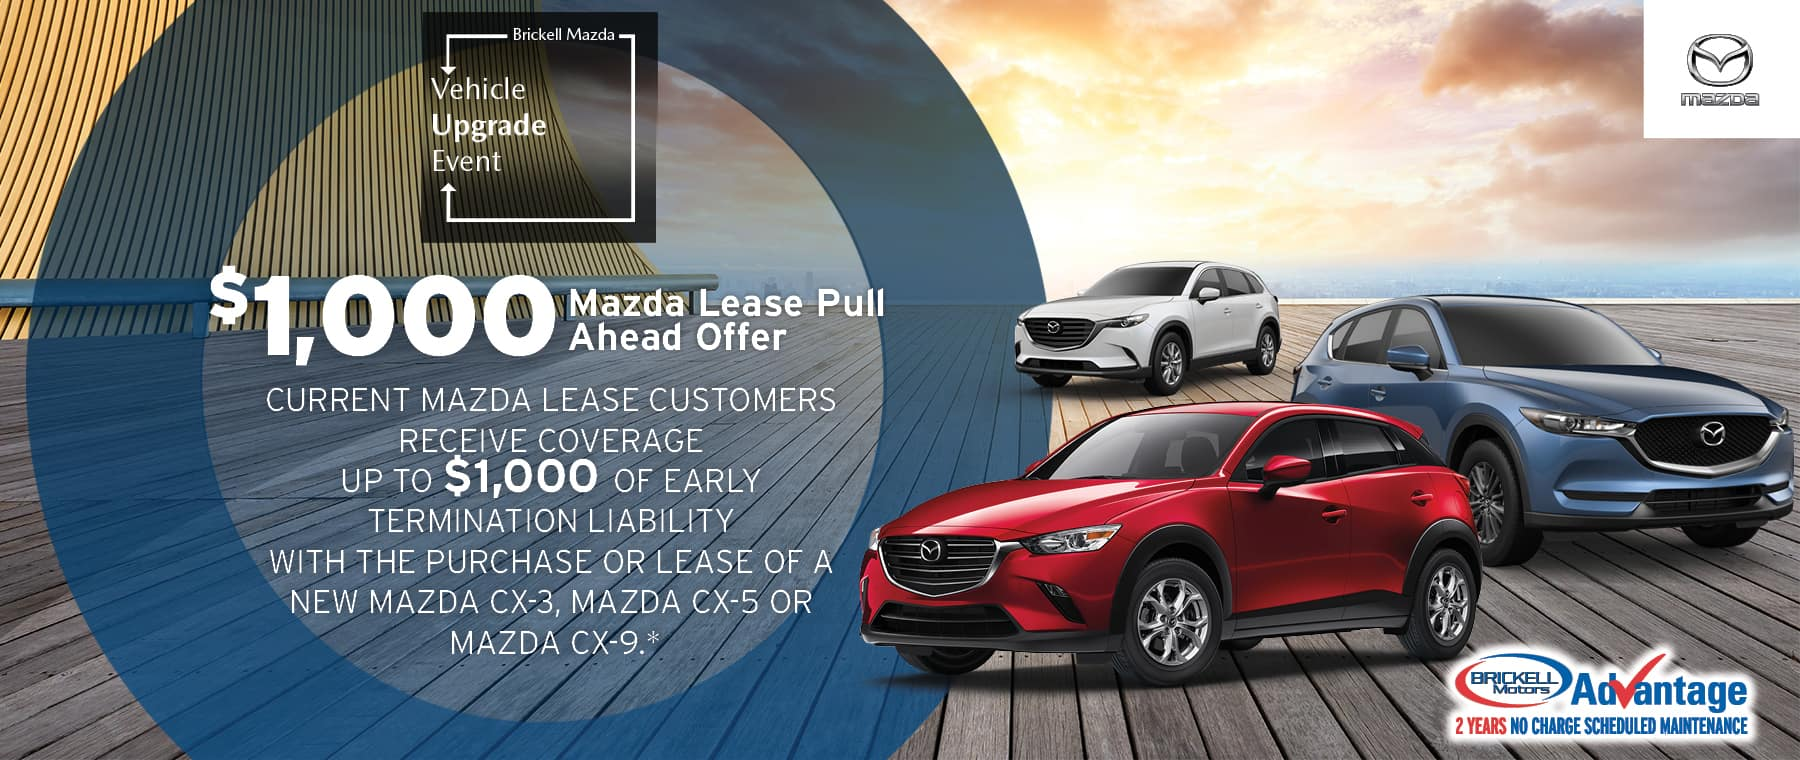 Brickell Mazda Lease